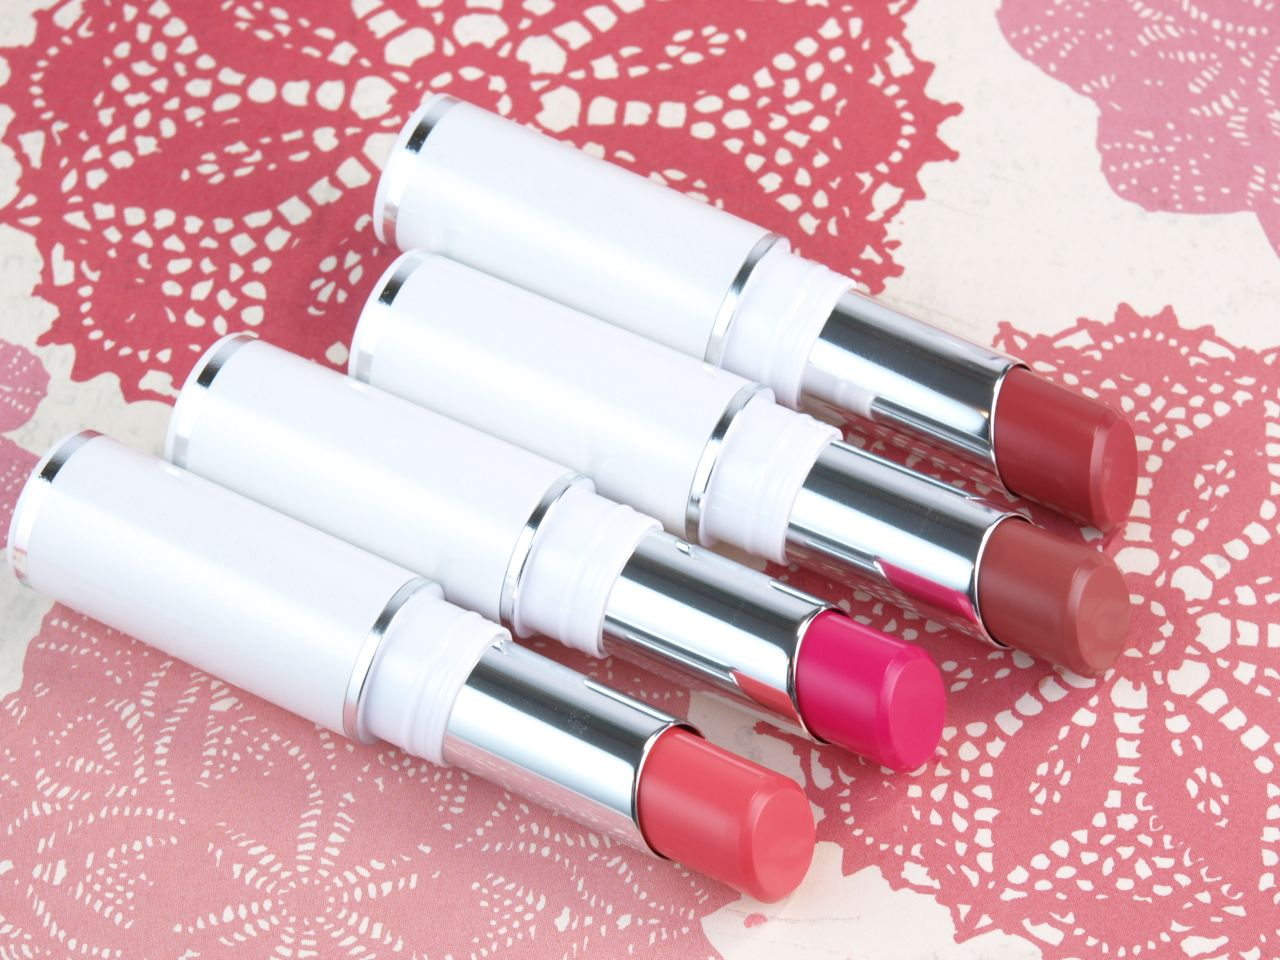 Lancome Shine Lover Vibrant Shine Lipsticks: Review and Swatches